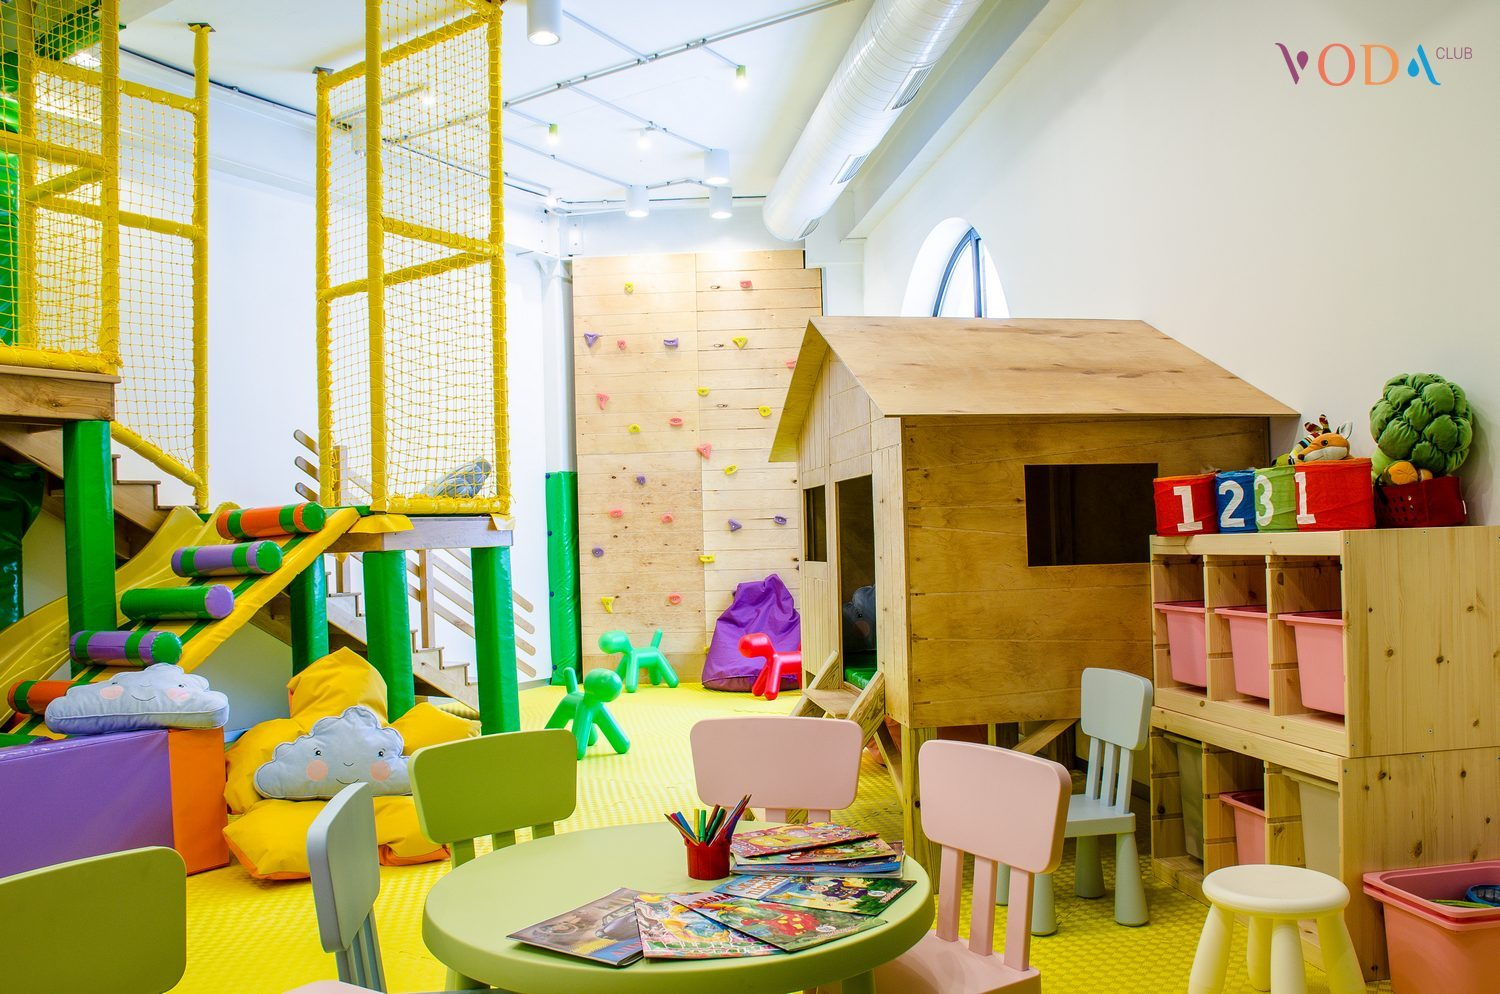 voda_club_kids_room006